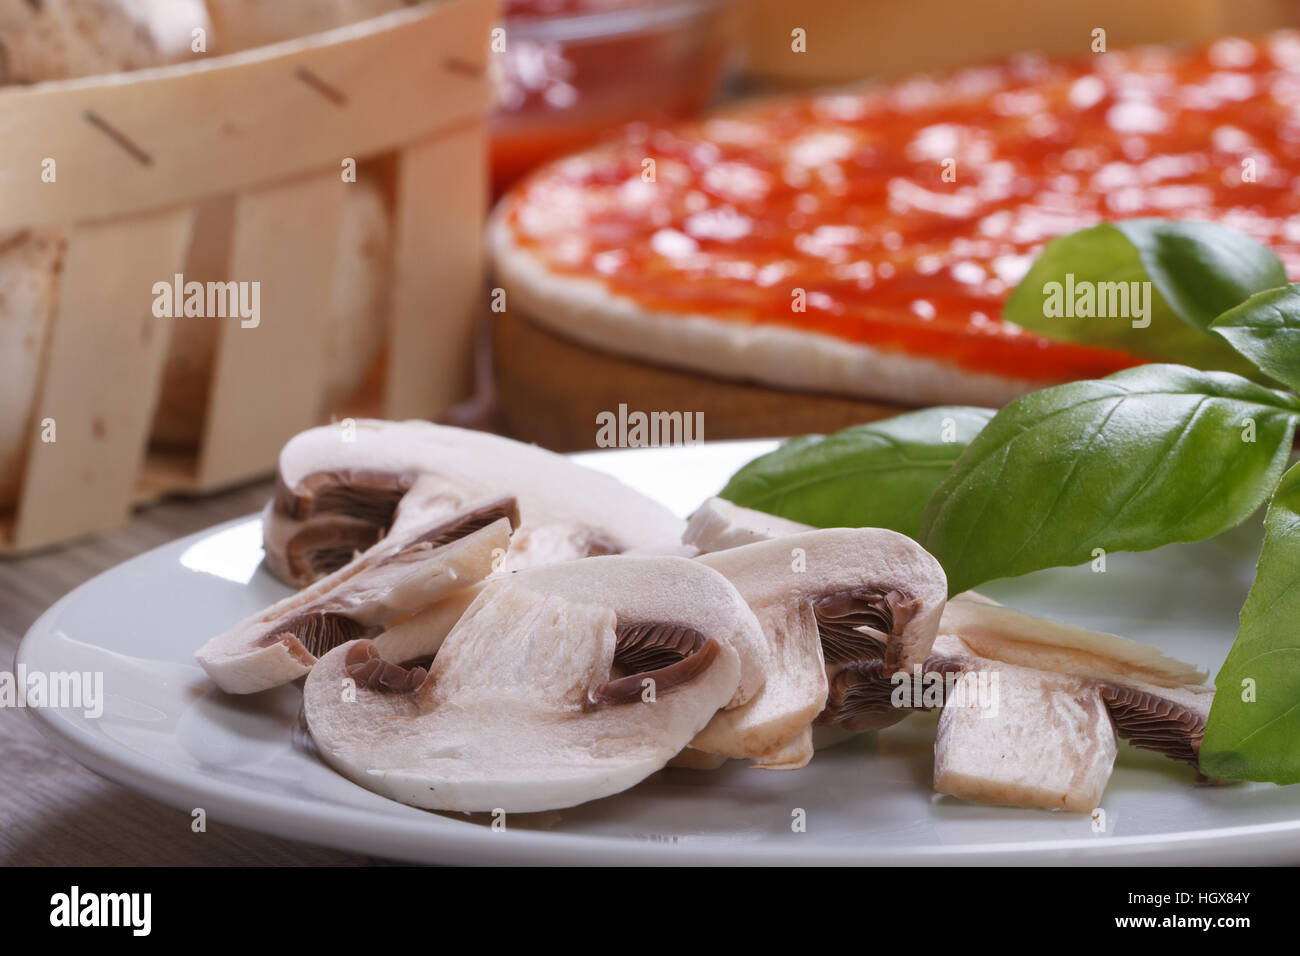 preparation of ingredients for pizza: sliced mushrooms, basil, dough, tomato. horizontal - Stock Image